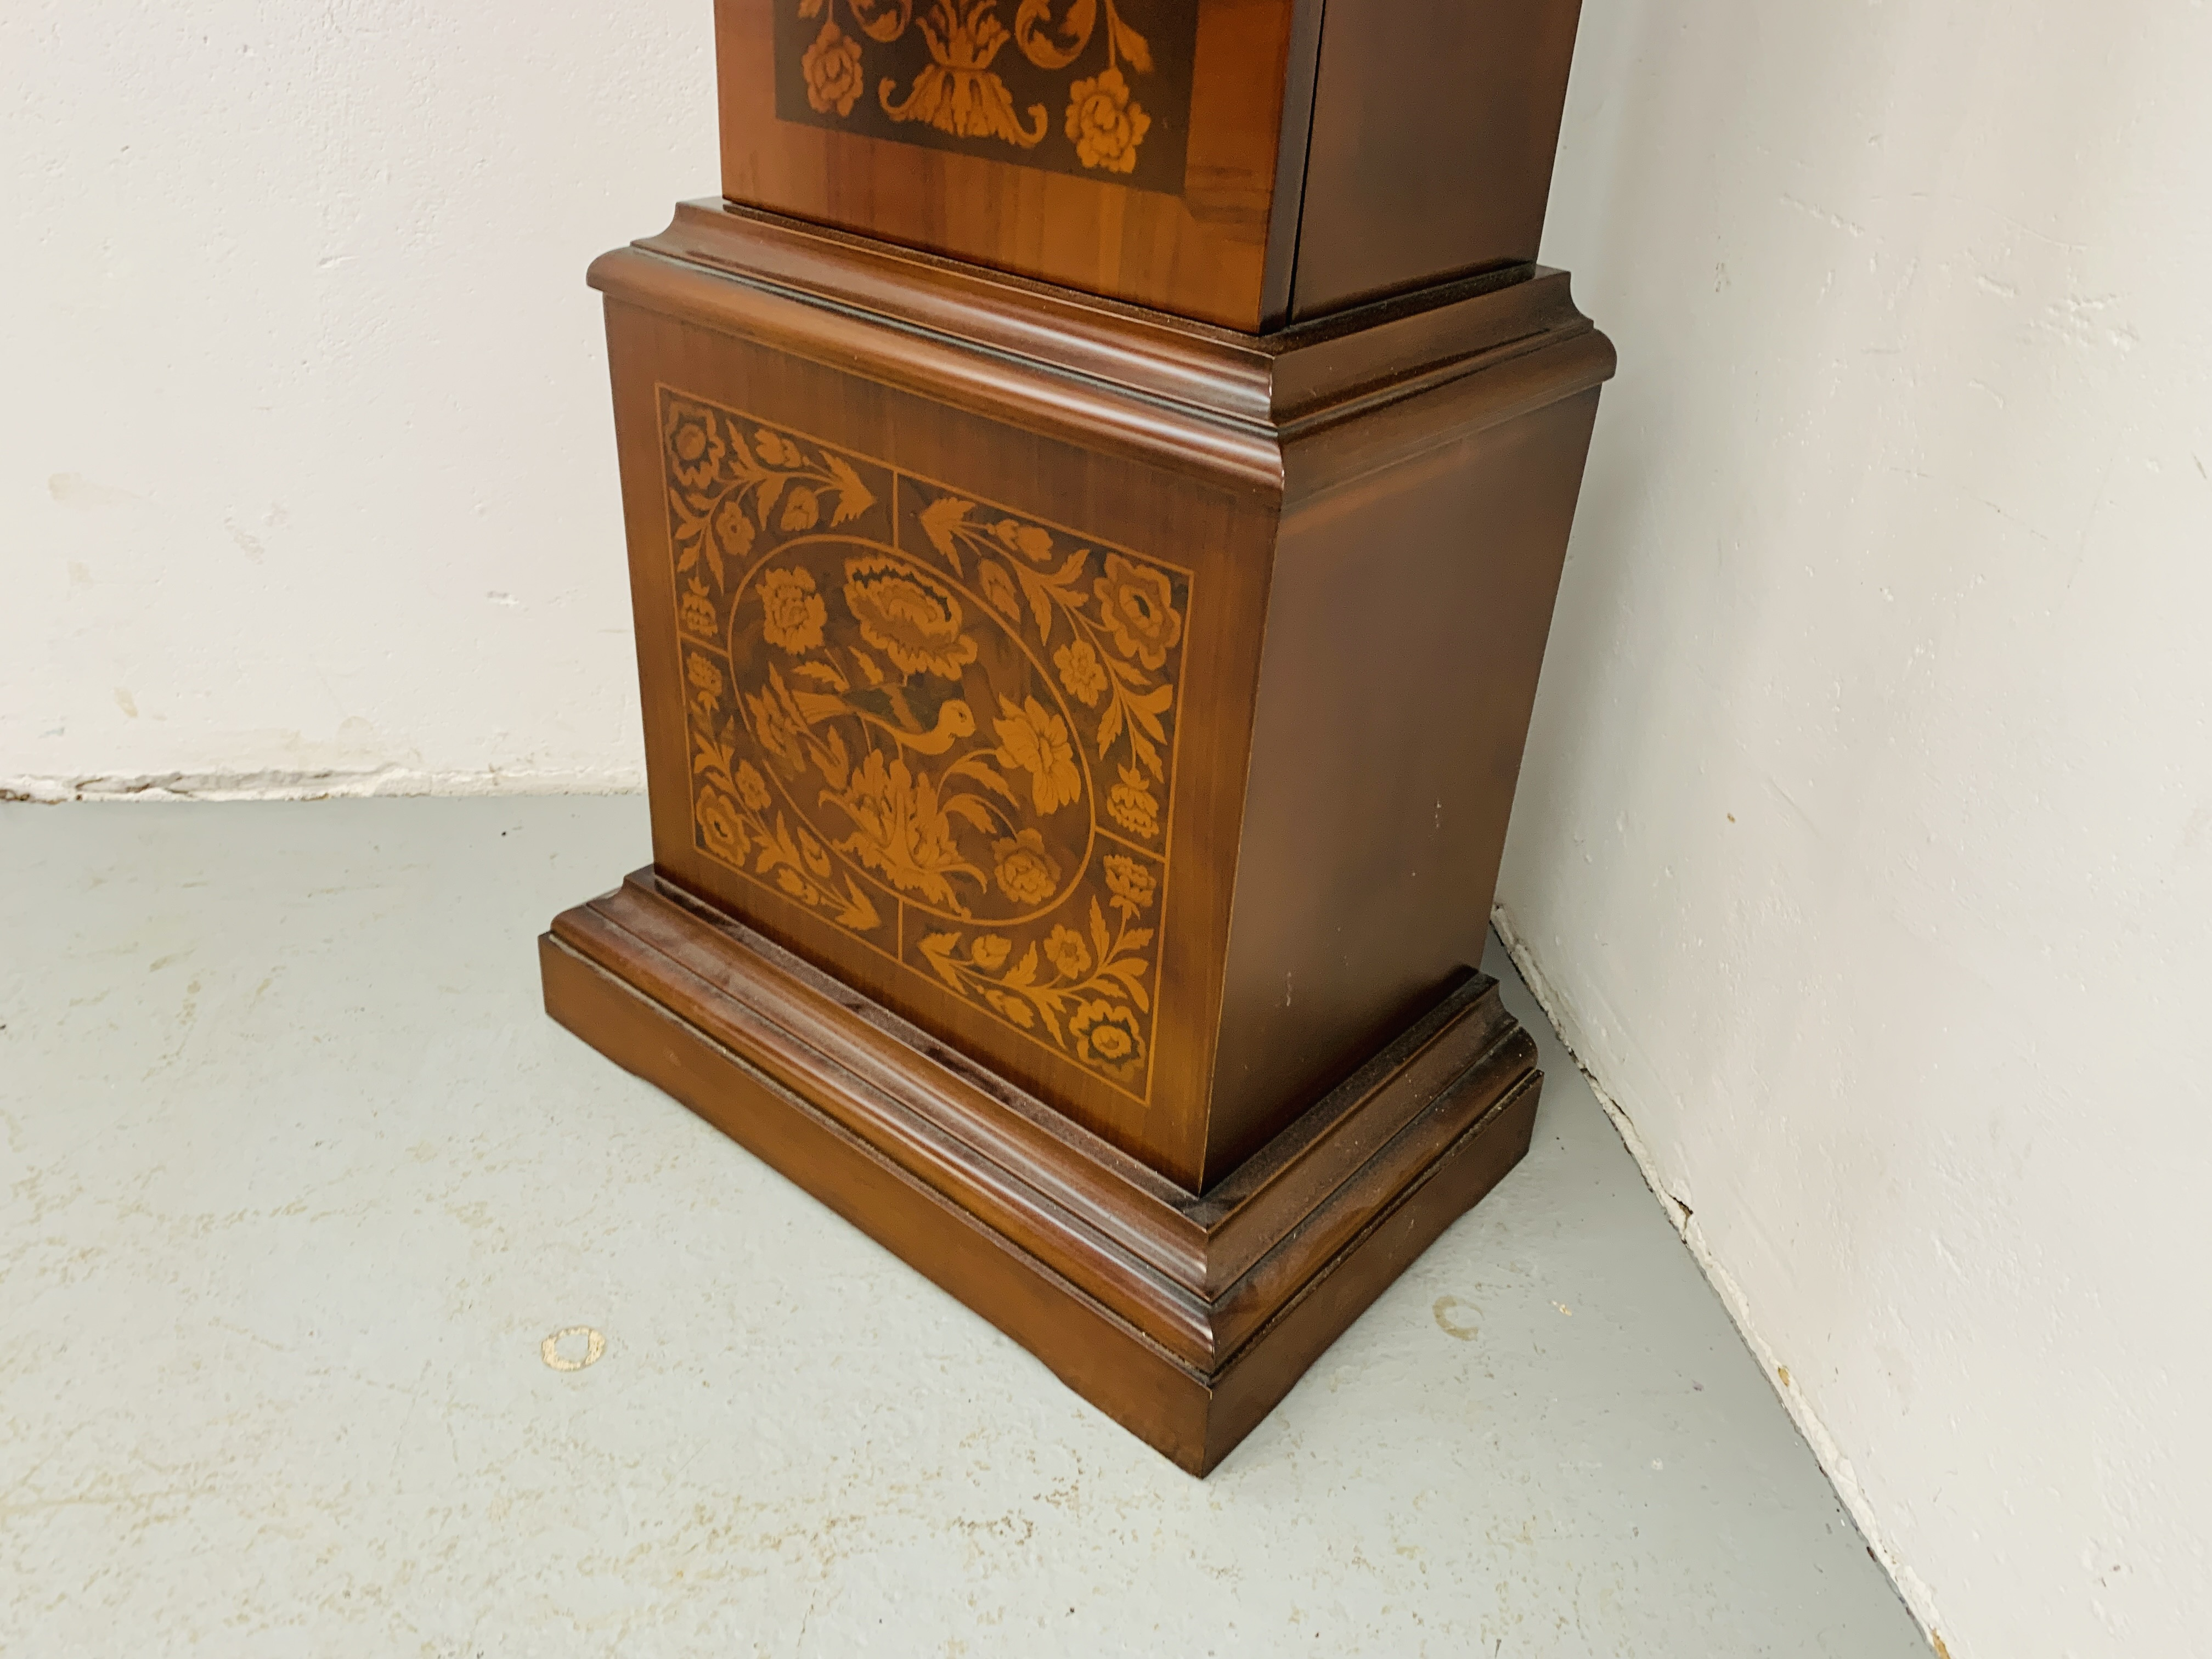 A GOOD QUALITY REPRODUCTION LONG CASE CLOCK - WESTMINSTER CHIME - SOLD AS SEEN - Image 8 of 19